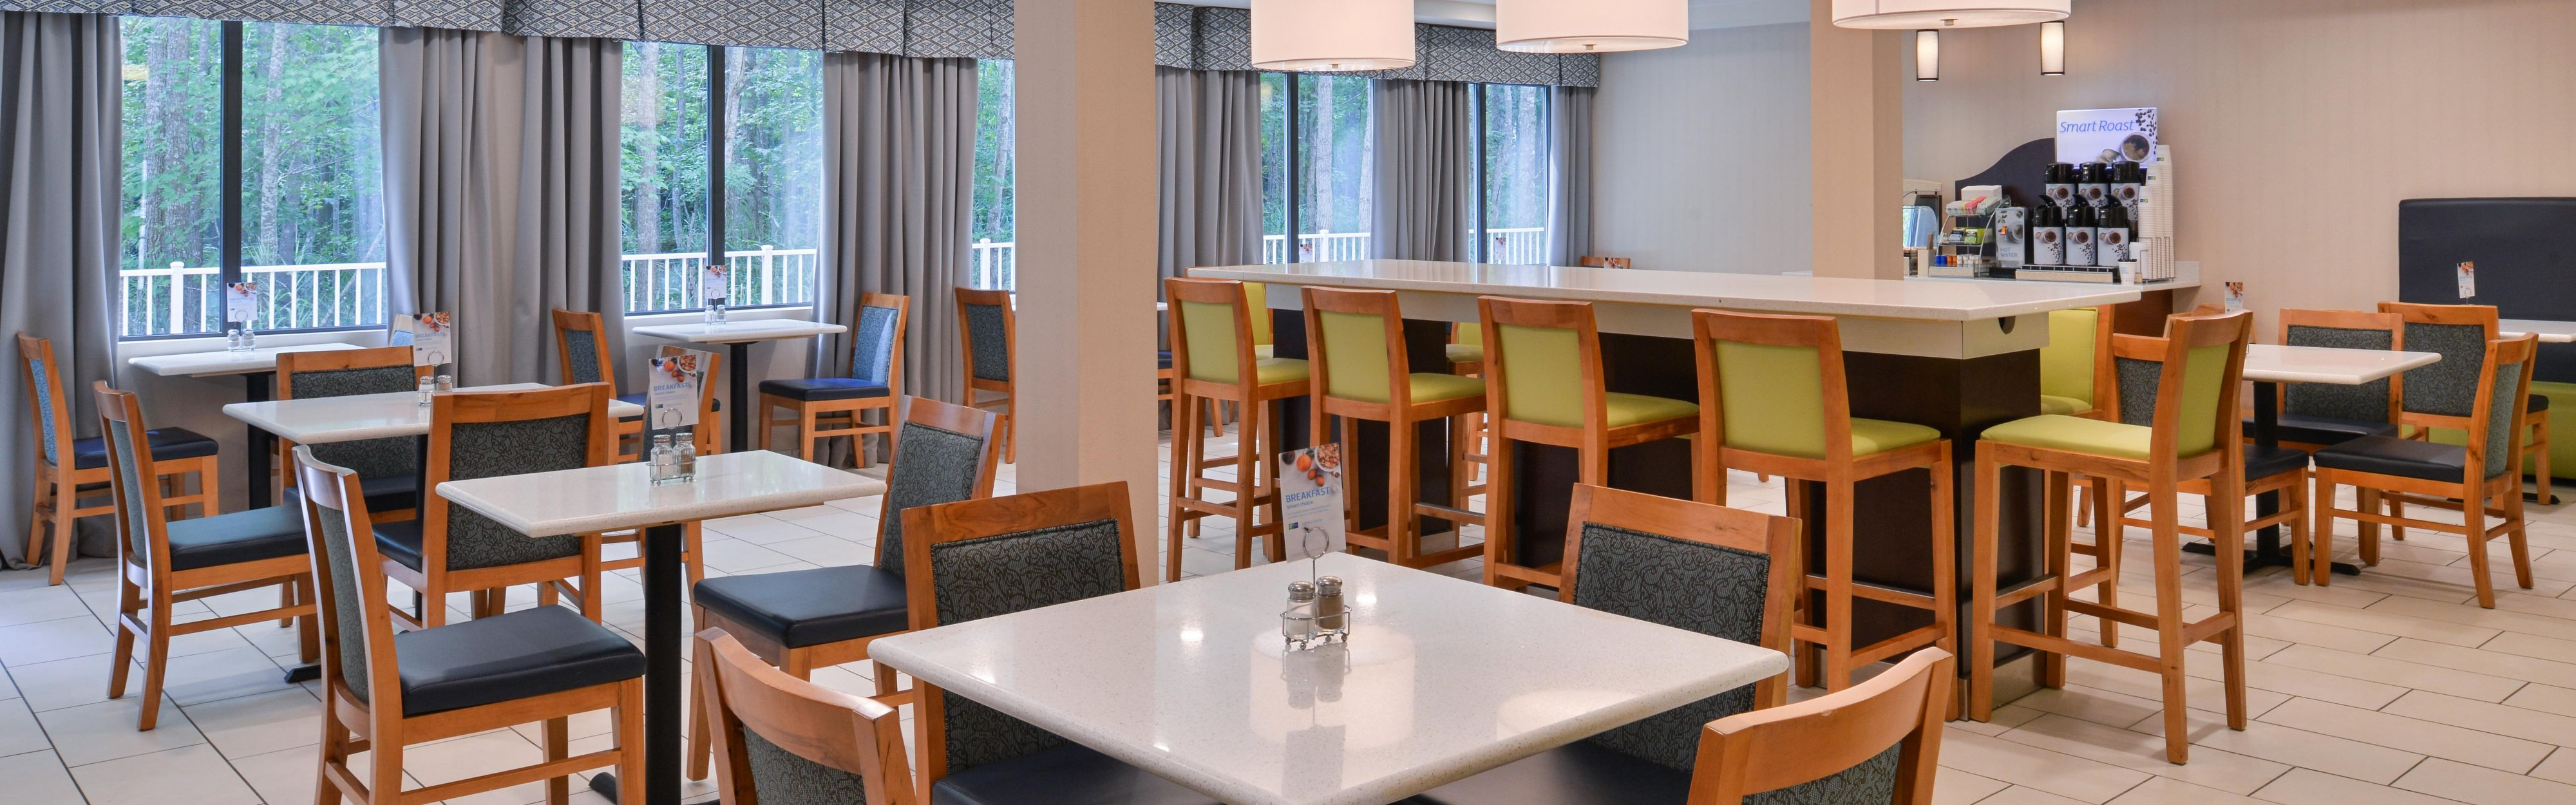 Holiday Inn Express & Suites West Ocean City image 3